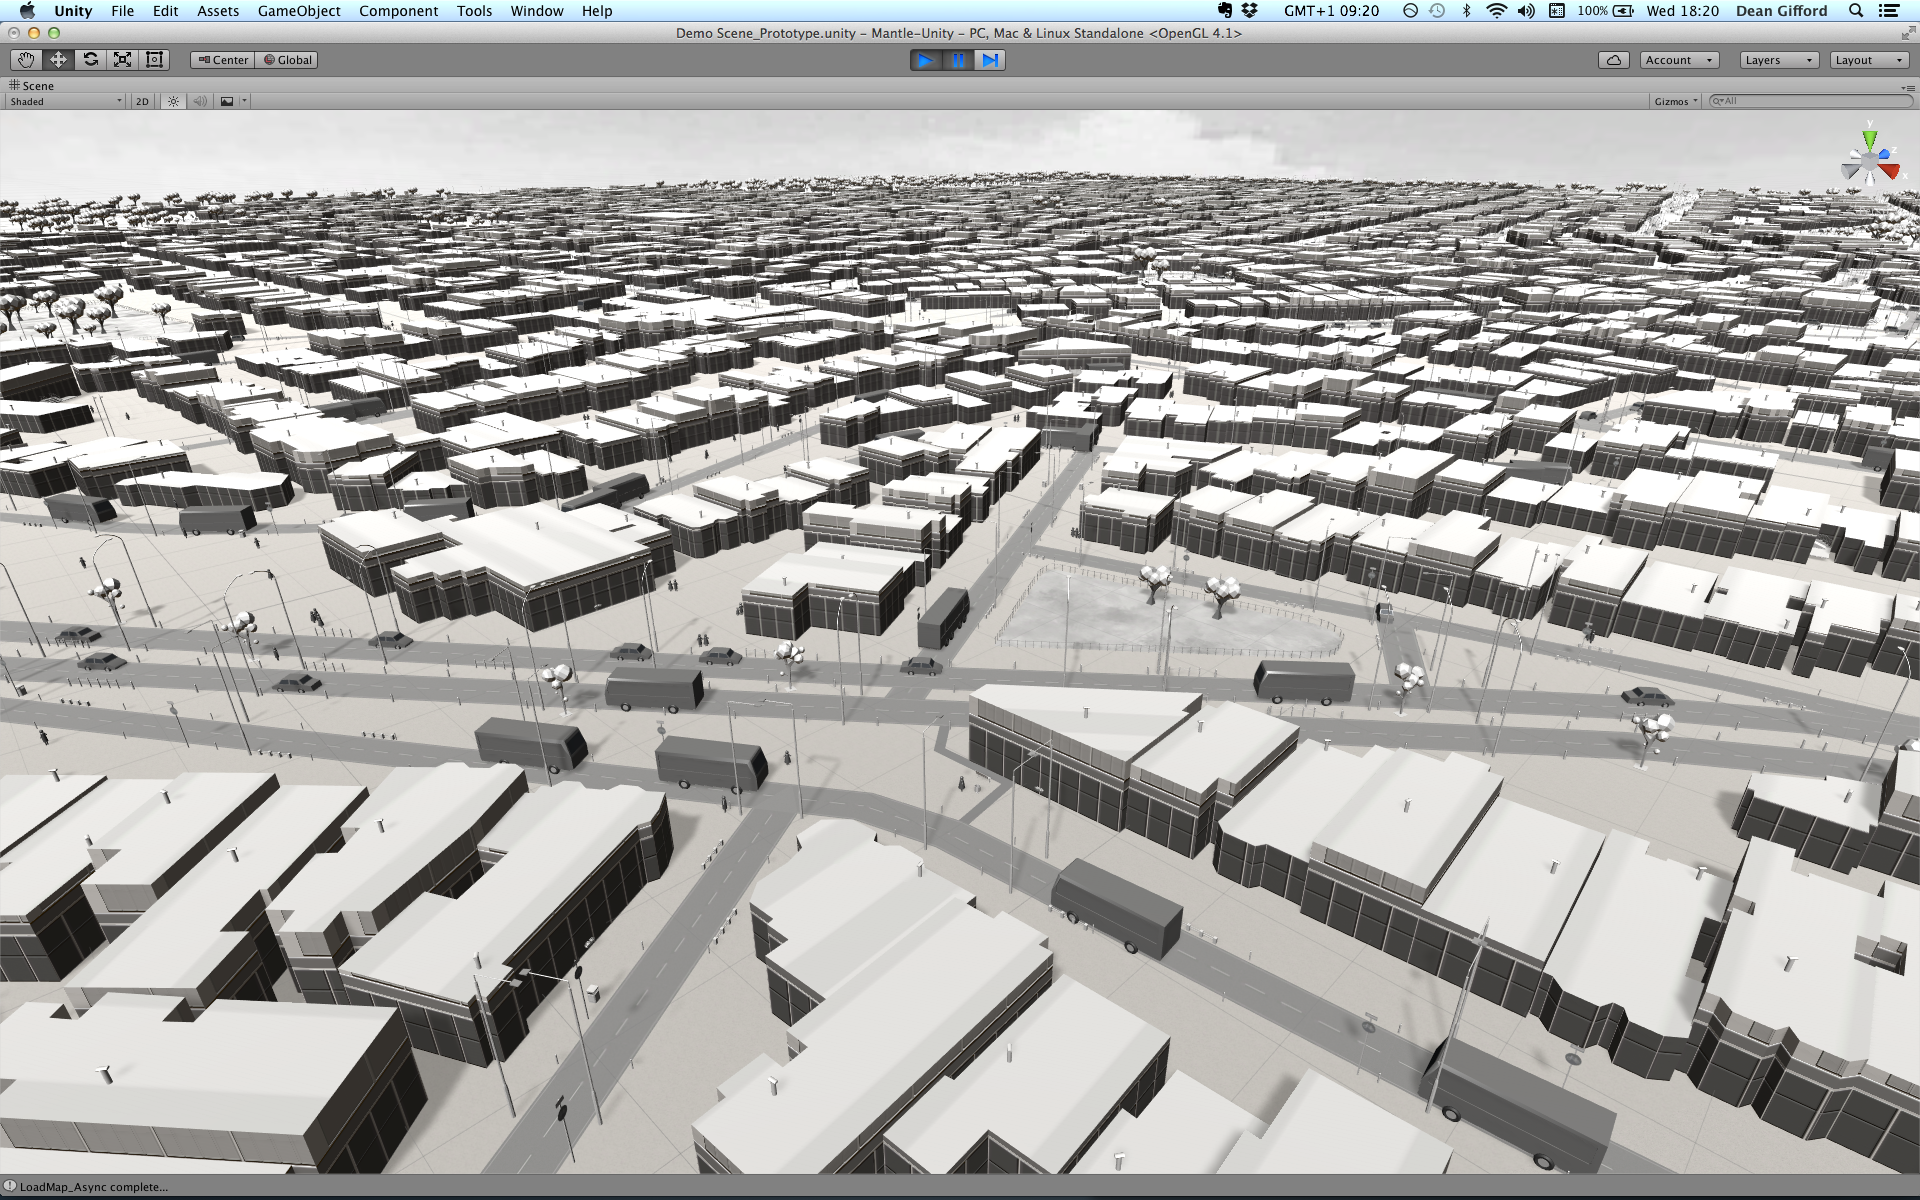 Work-in-progress: Buildings, land use areas and transport routes generated from Mapbox Streets vector tiles